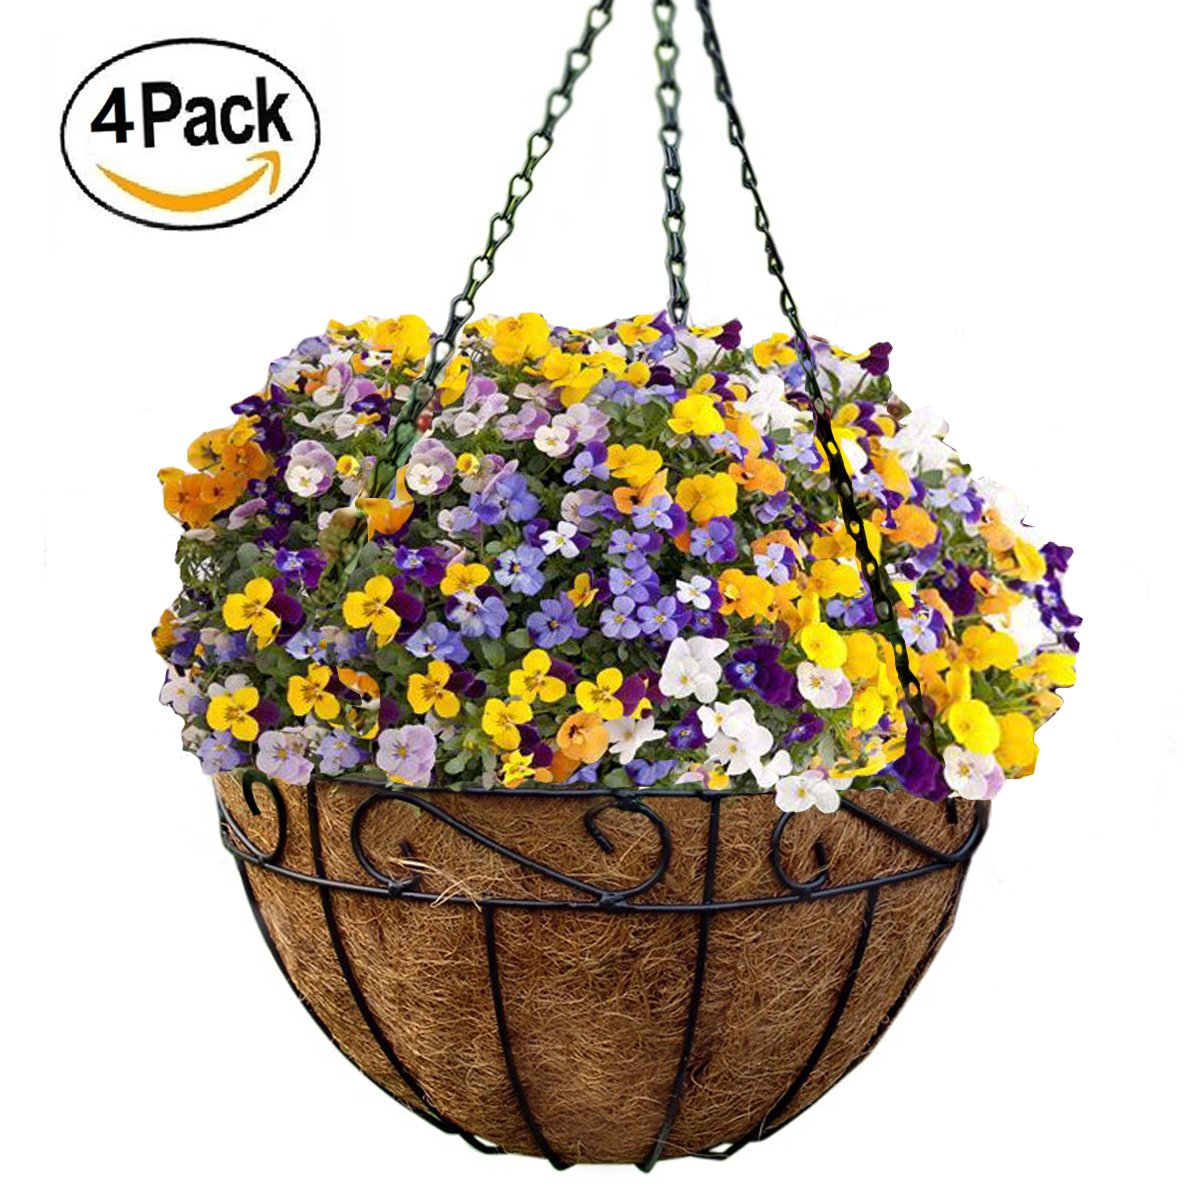 Get Quotations 4 Pack Metal Hanging Planter Basket With Coco Coir Liner 10 Inch Round Wire Plant Holder